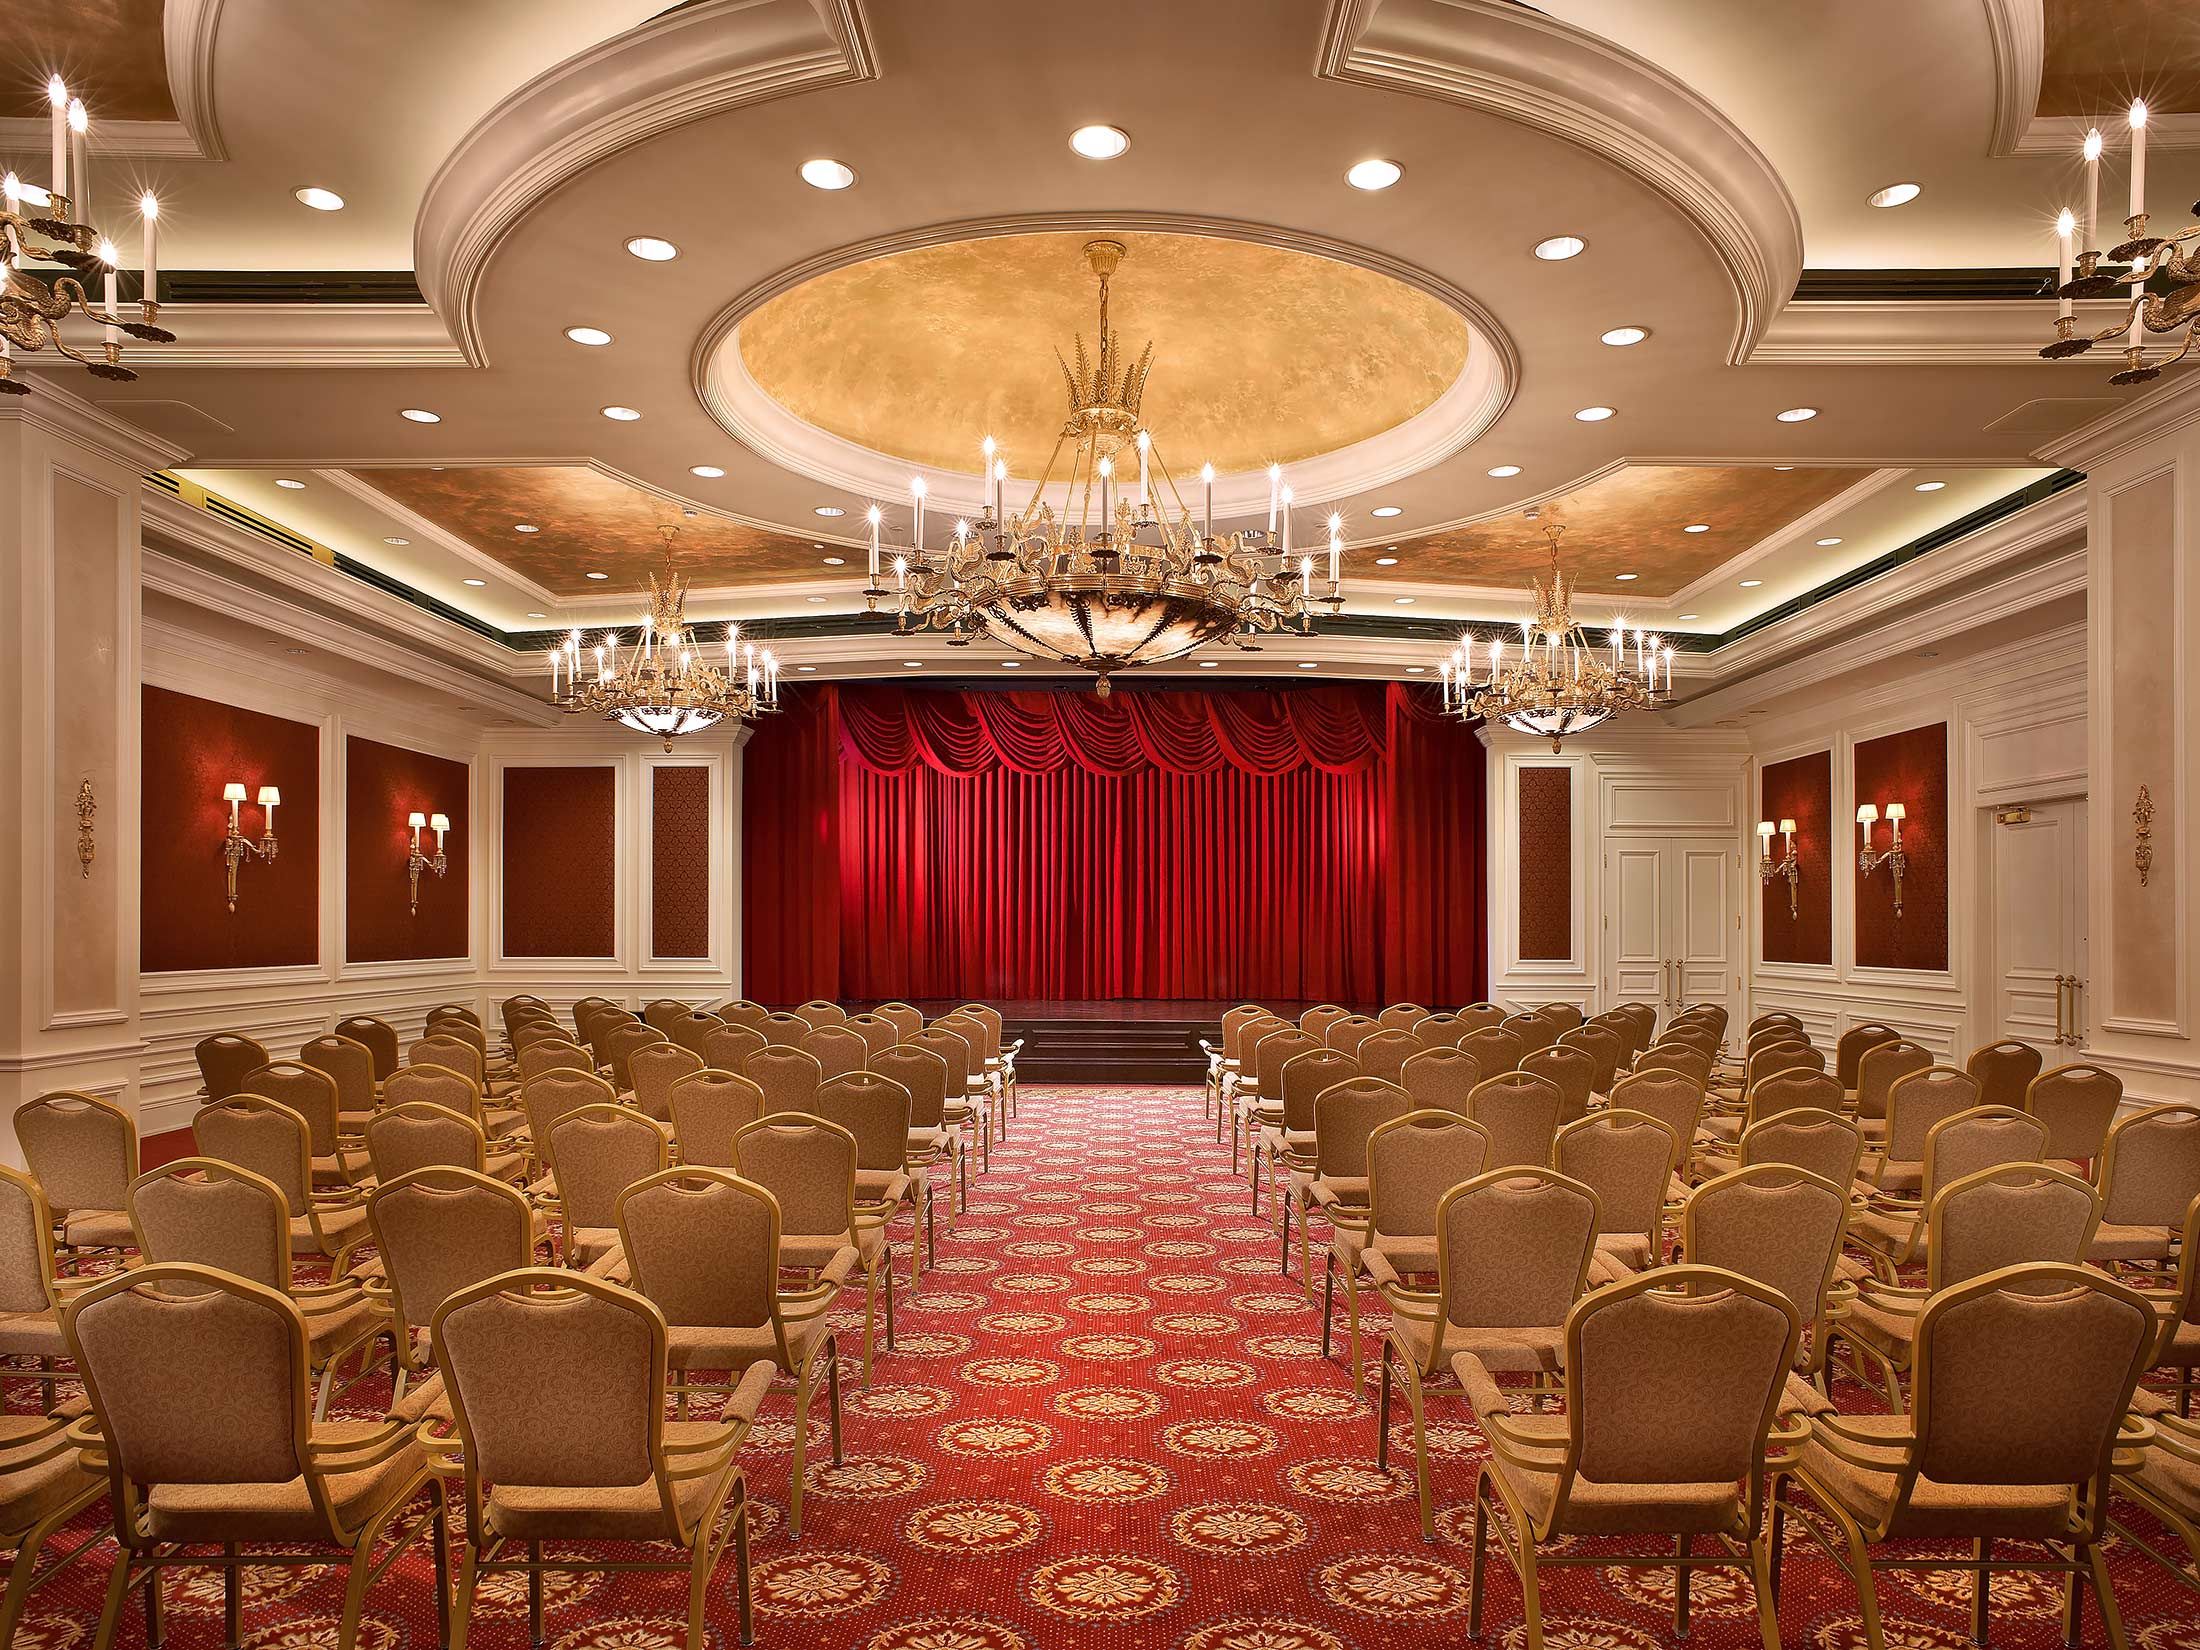 The-Palace-Coral-Gables-Theater